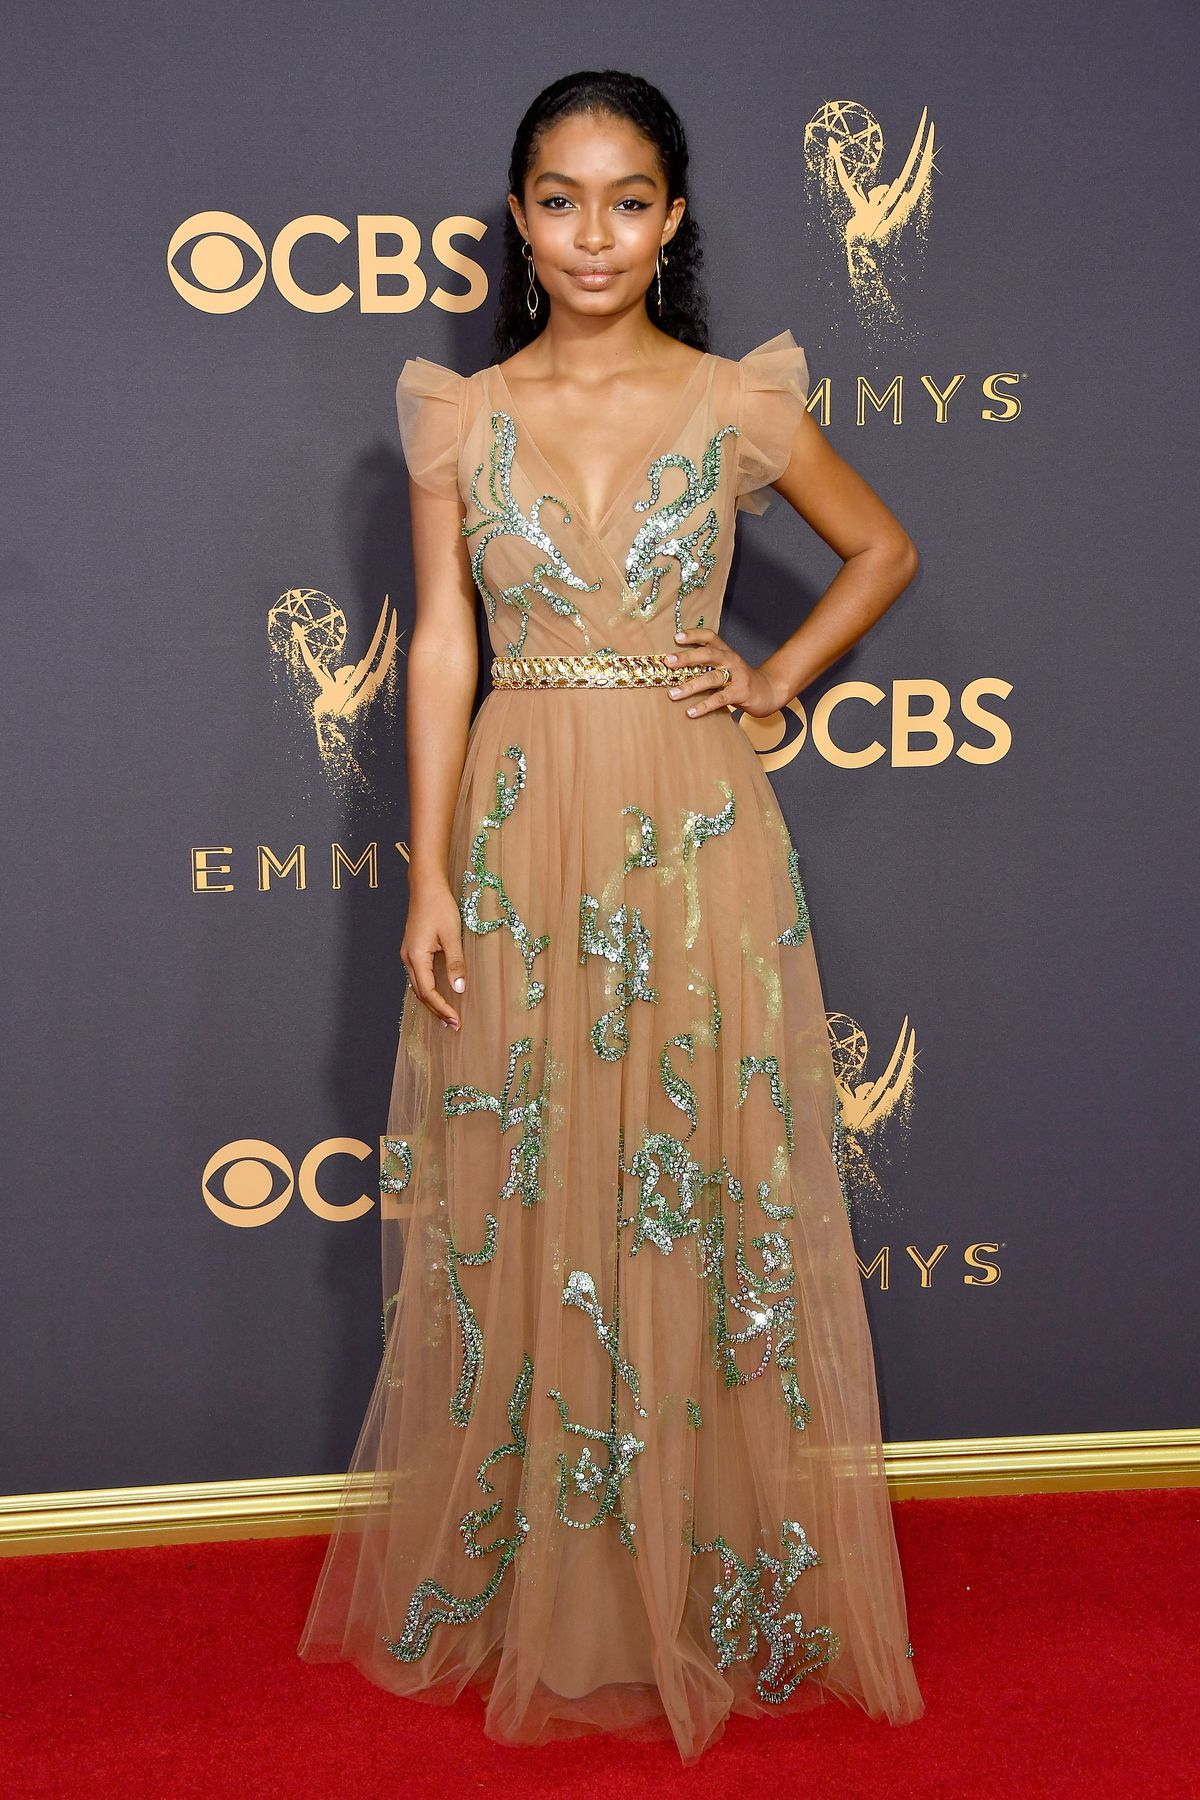 Emmys 2017: the most interesting fashion of the night - Vox